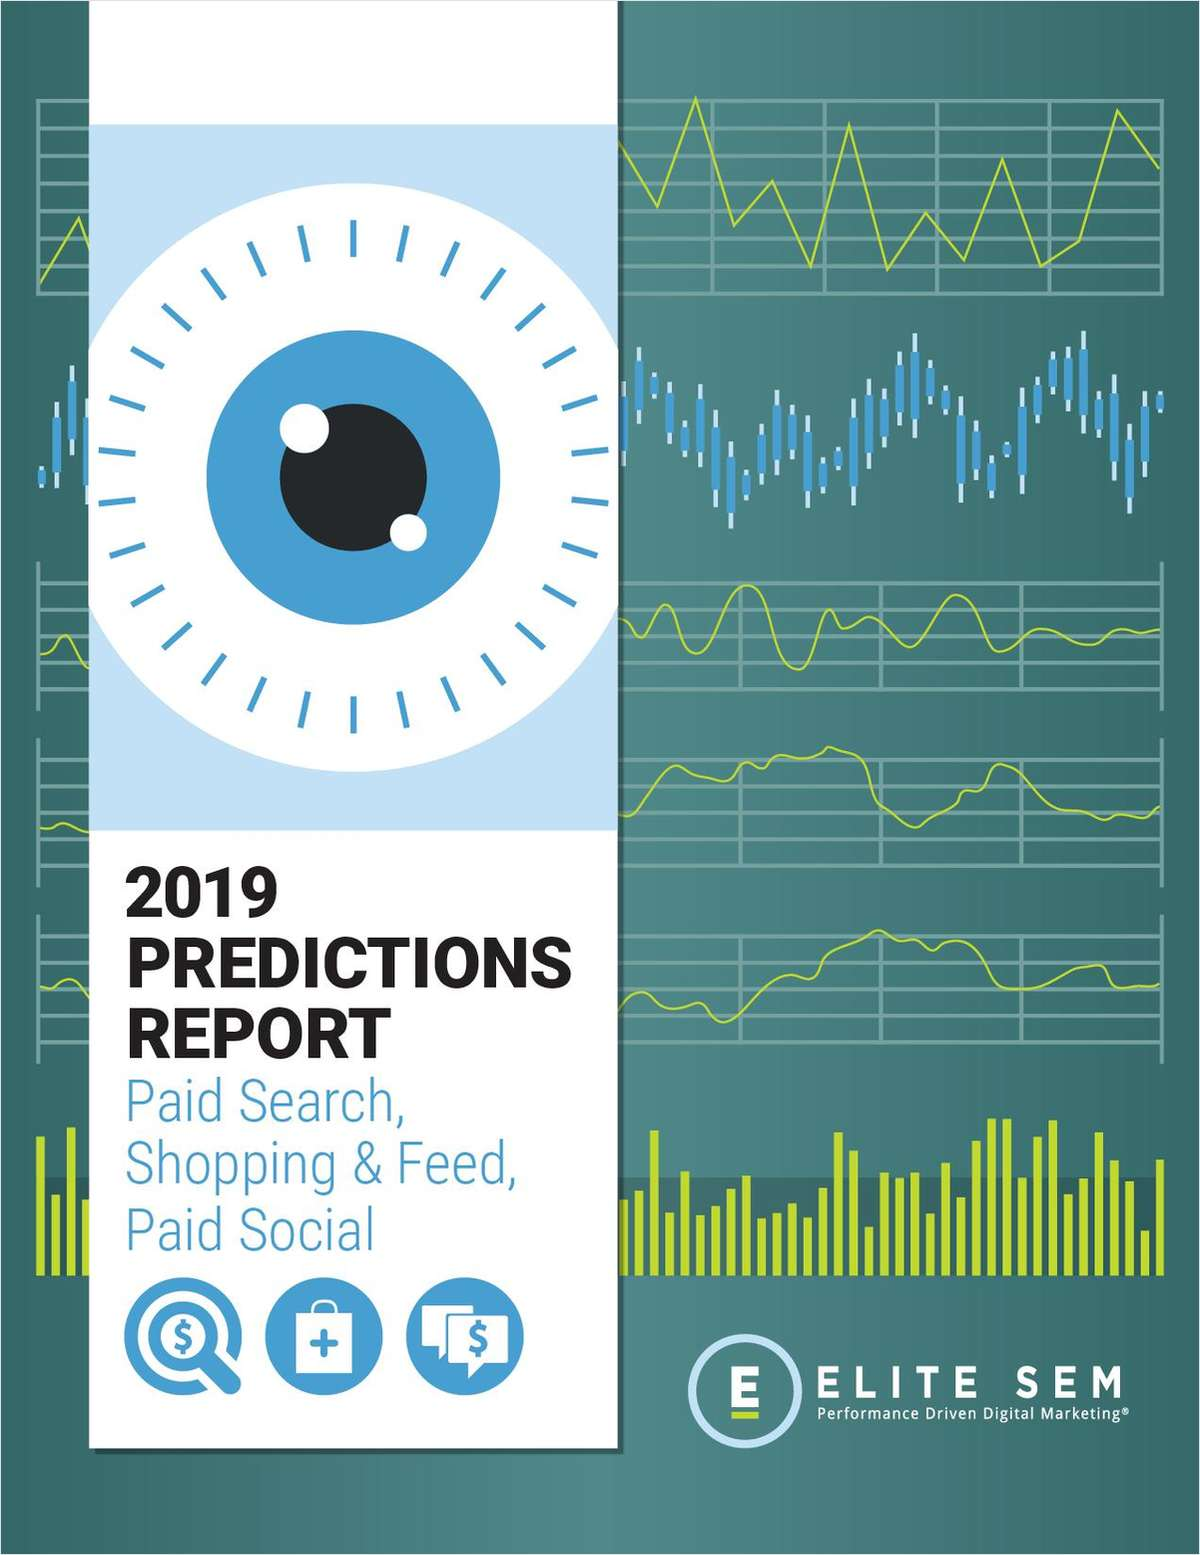 2019 Predictions Report: Paid Search, Shopping, and Paid Social